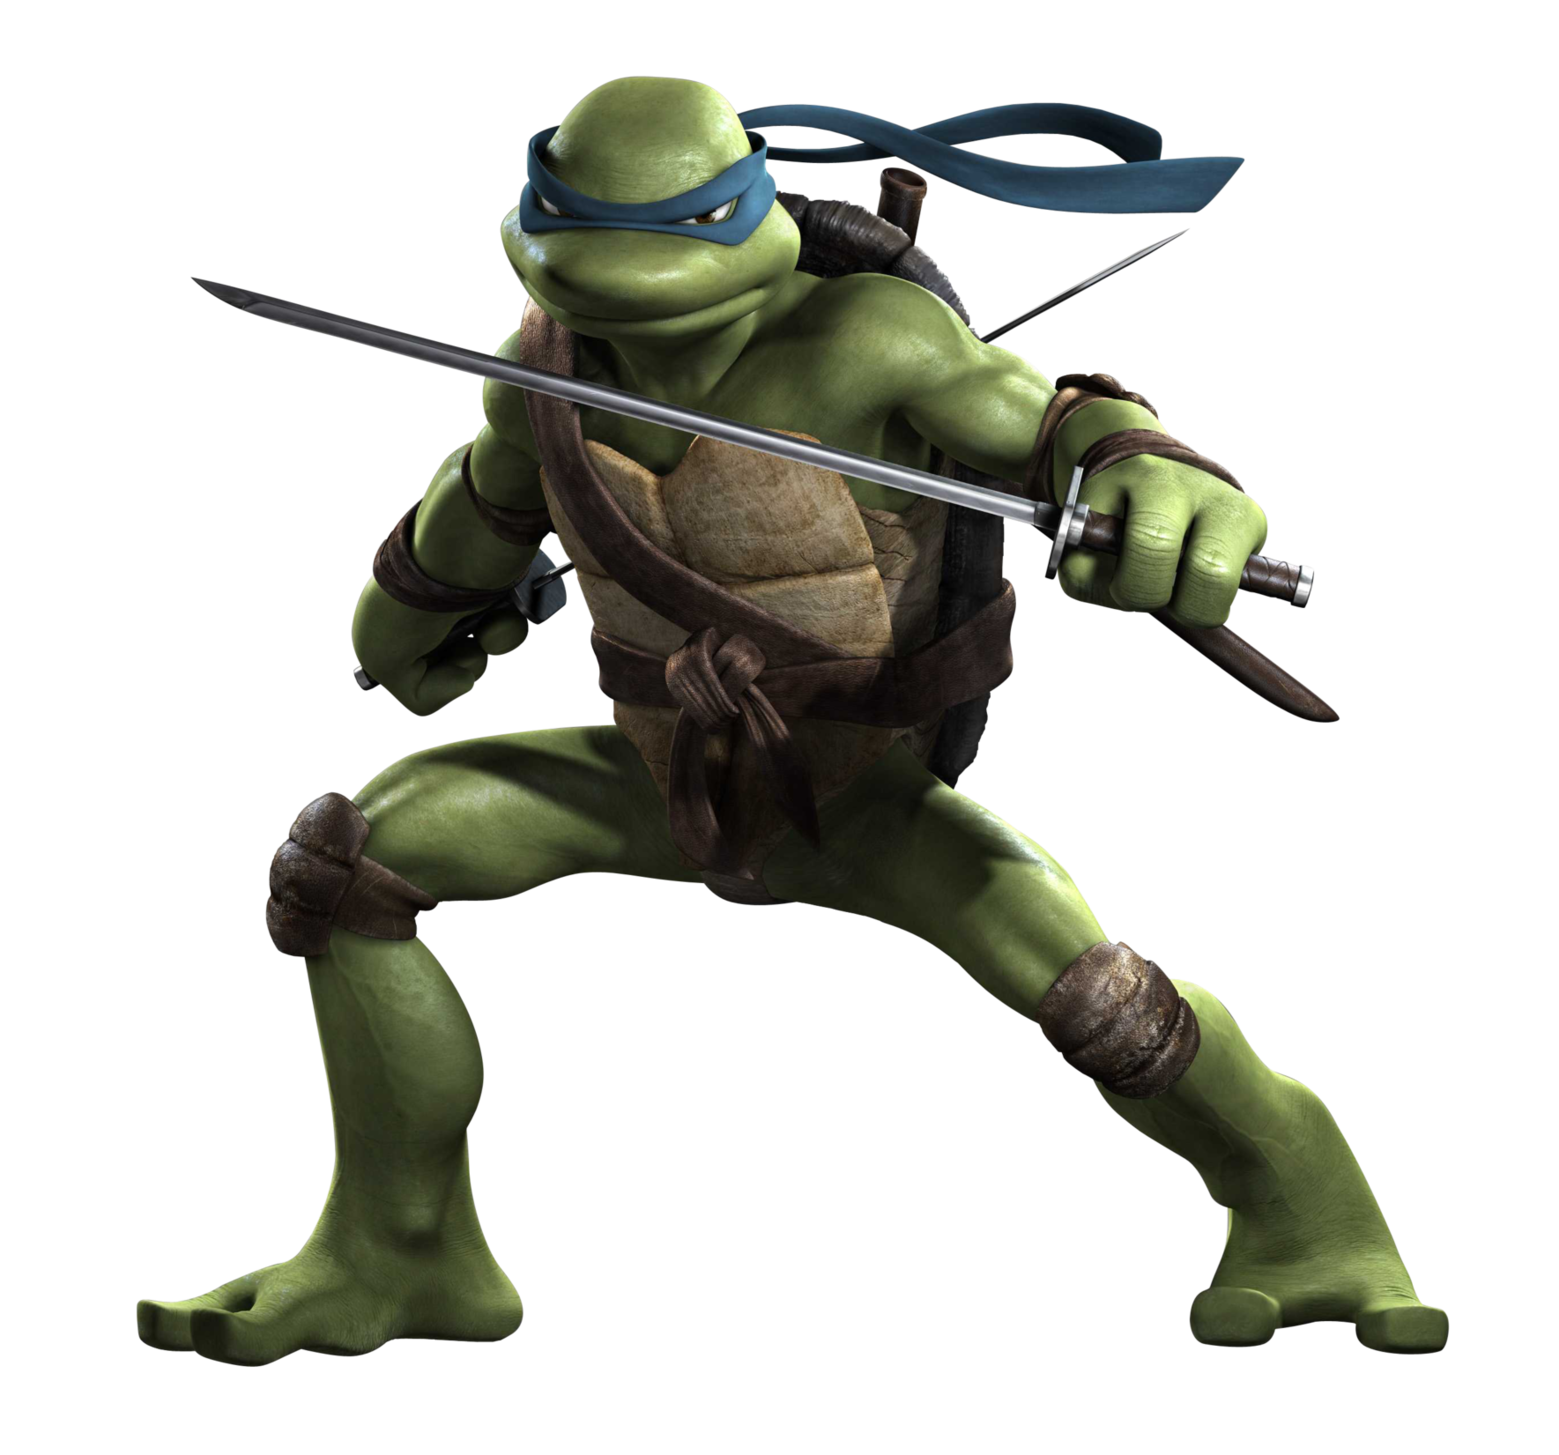 March 2015 dreager1 39 s blog - Tortues ninja leonardo ...